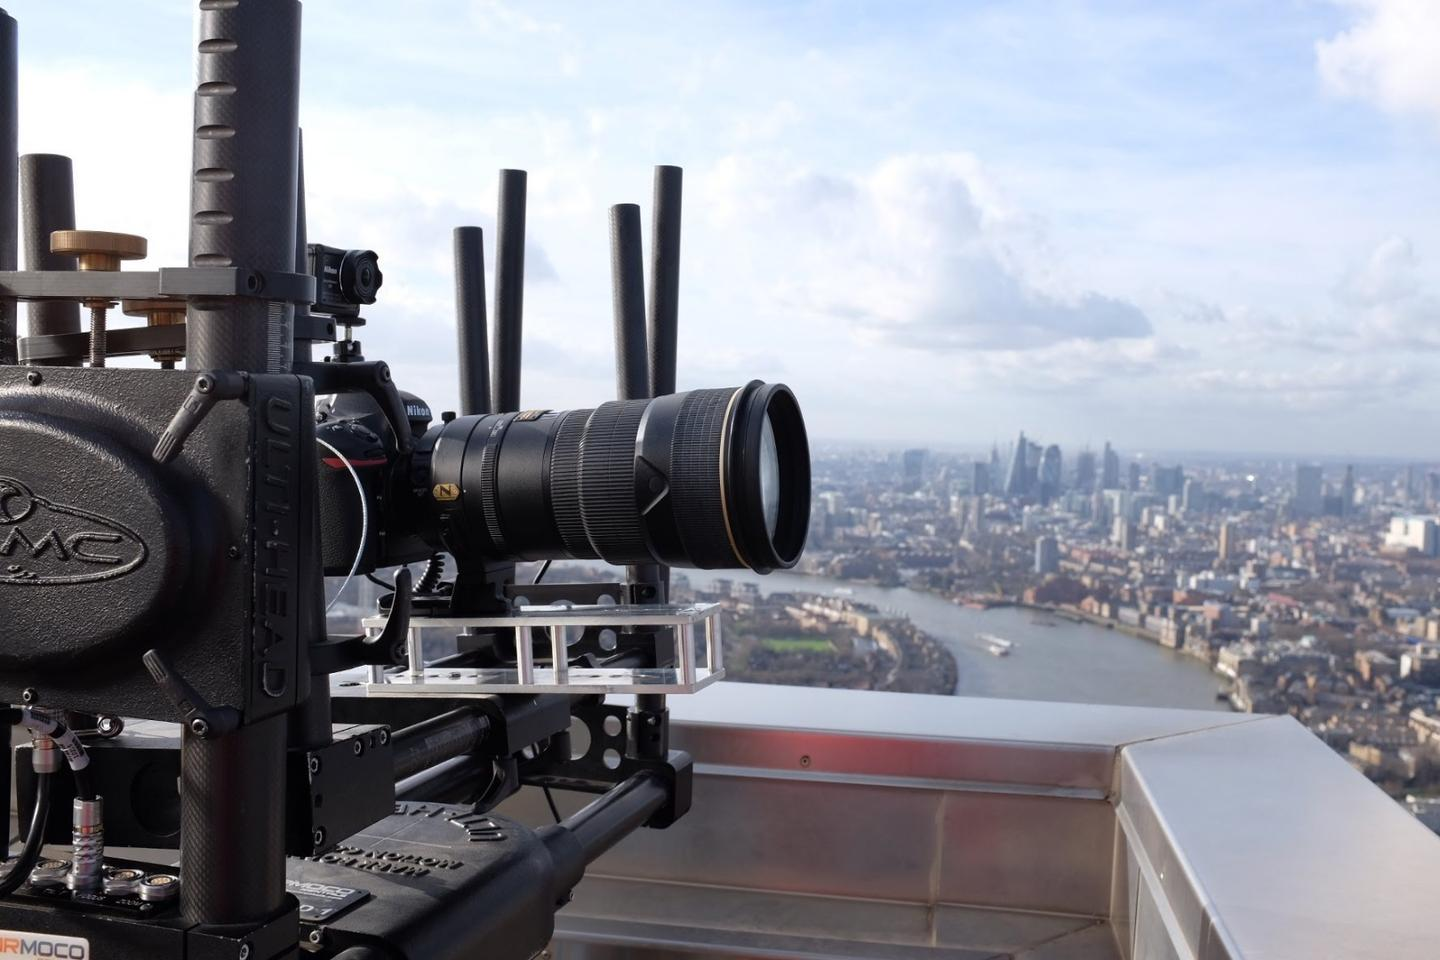 A Nikon D850 with a 300mmF2.8 Nikkor lens was used to take the first London Gigalapse